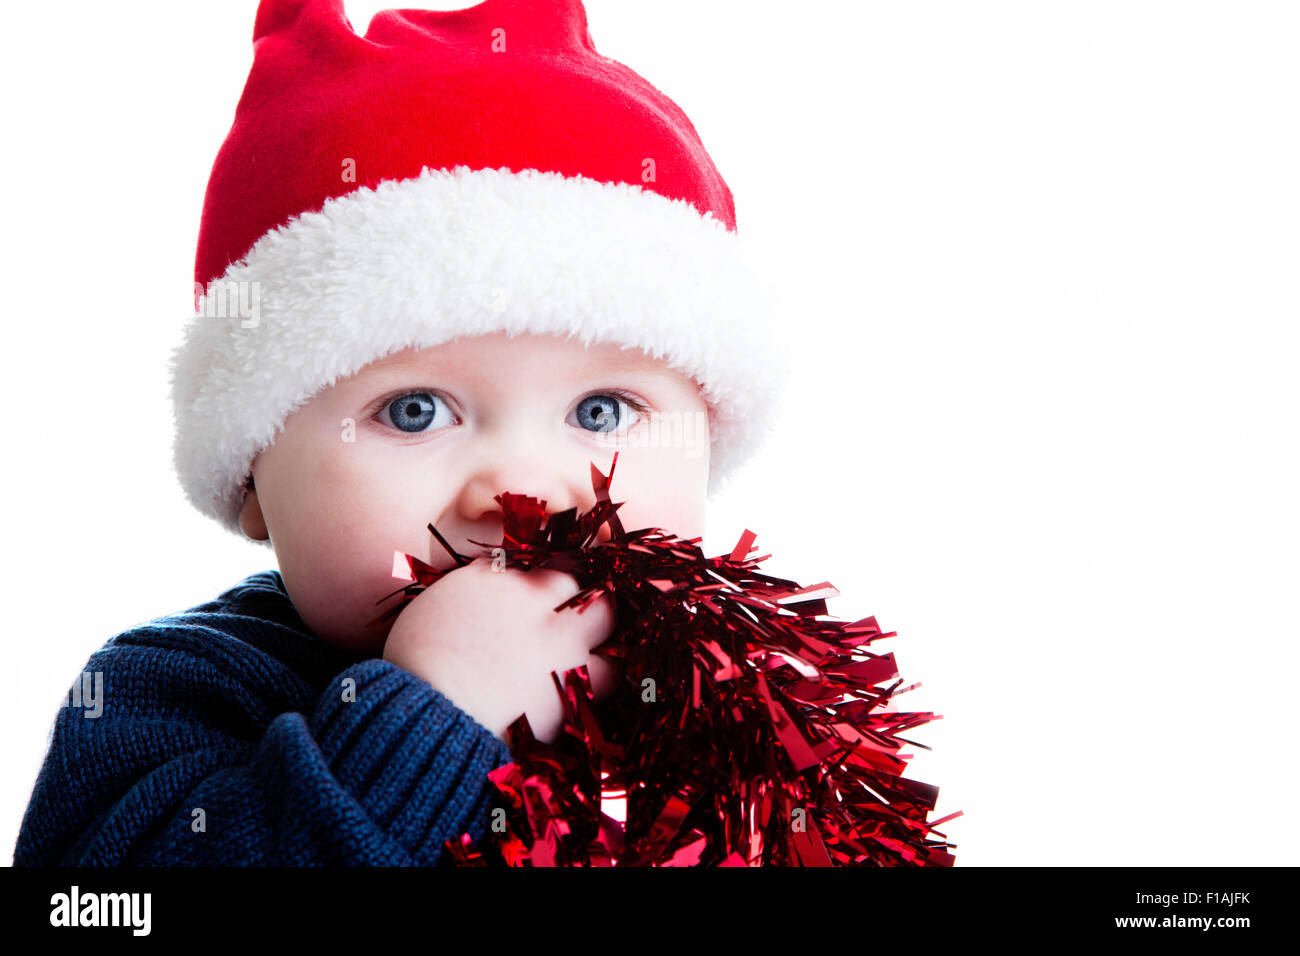 A studio shot of young child against a plain white background wearing a Christmas hat and holding tinsel - Stock Image